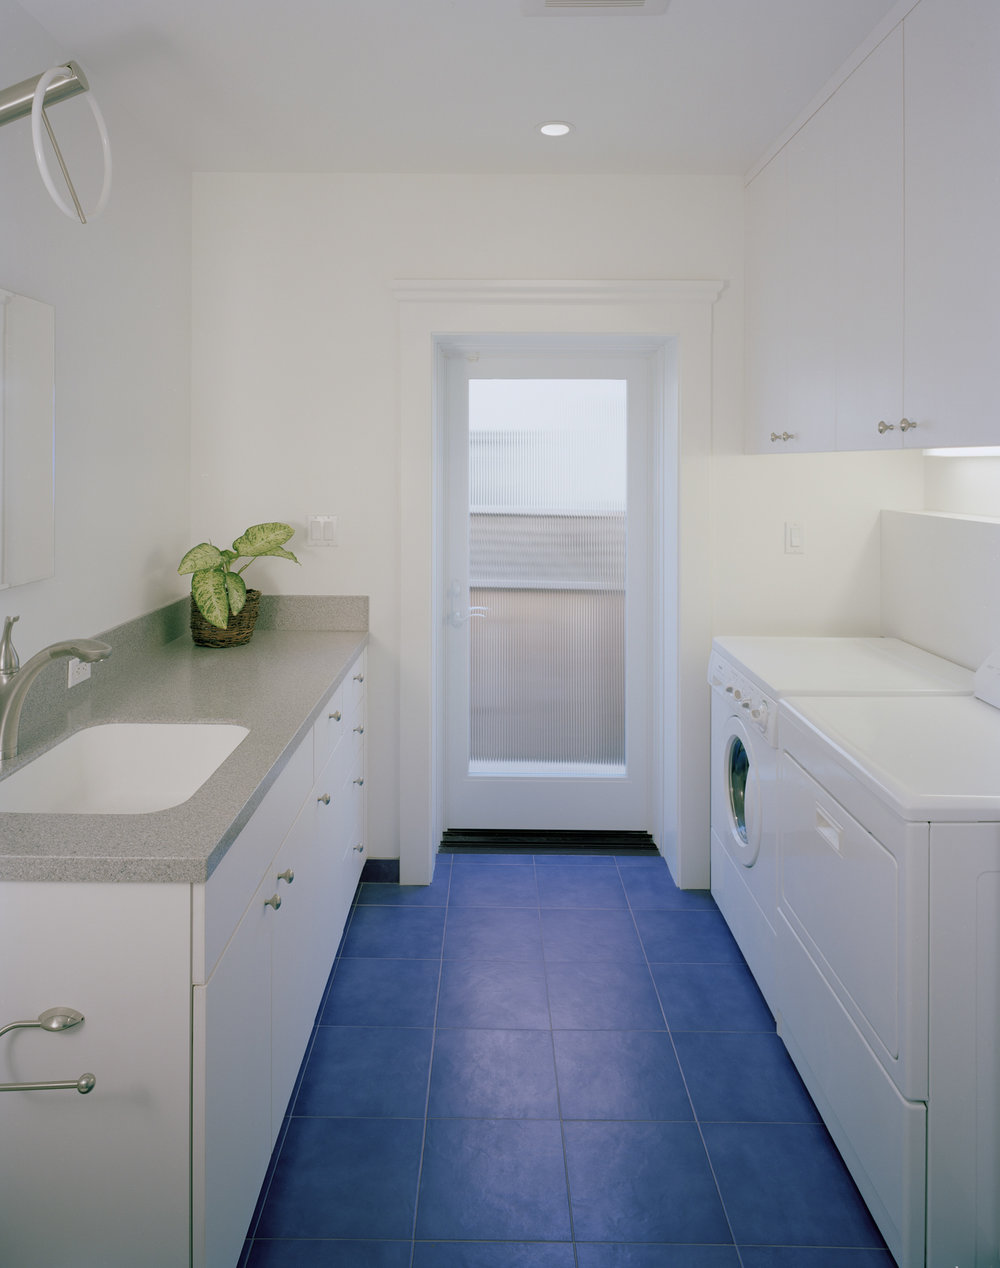 Kaplan-Architects-San Francisco-basement-remodel-laundry room.jpg